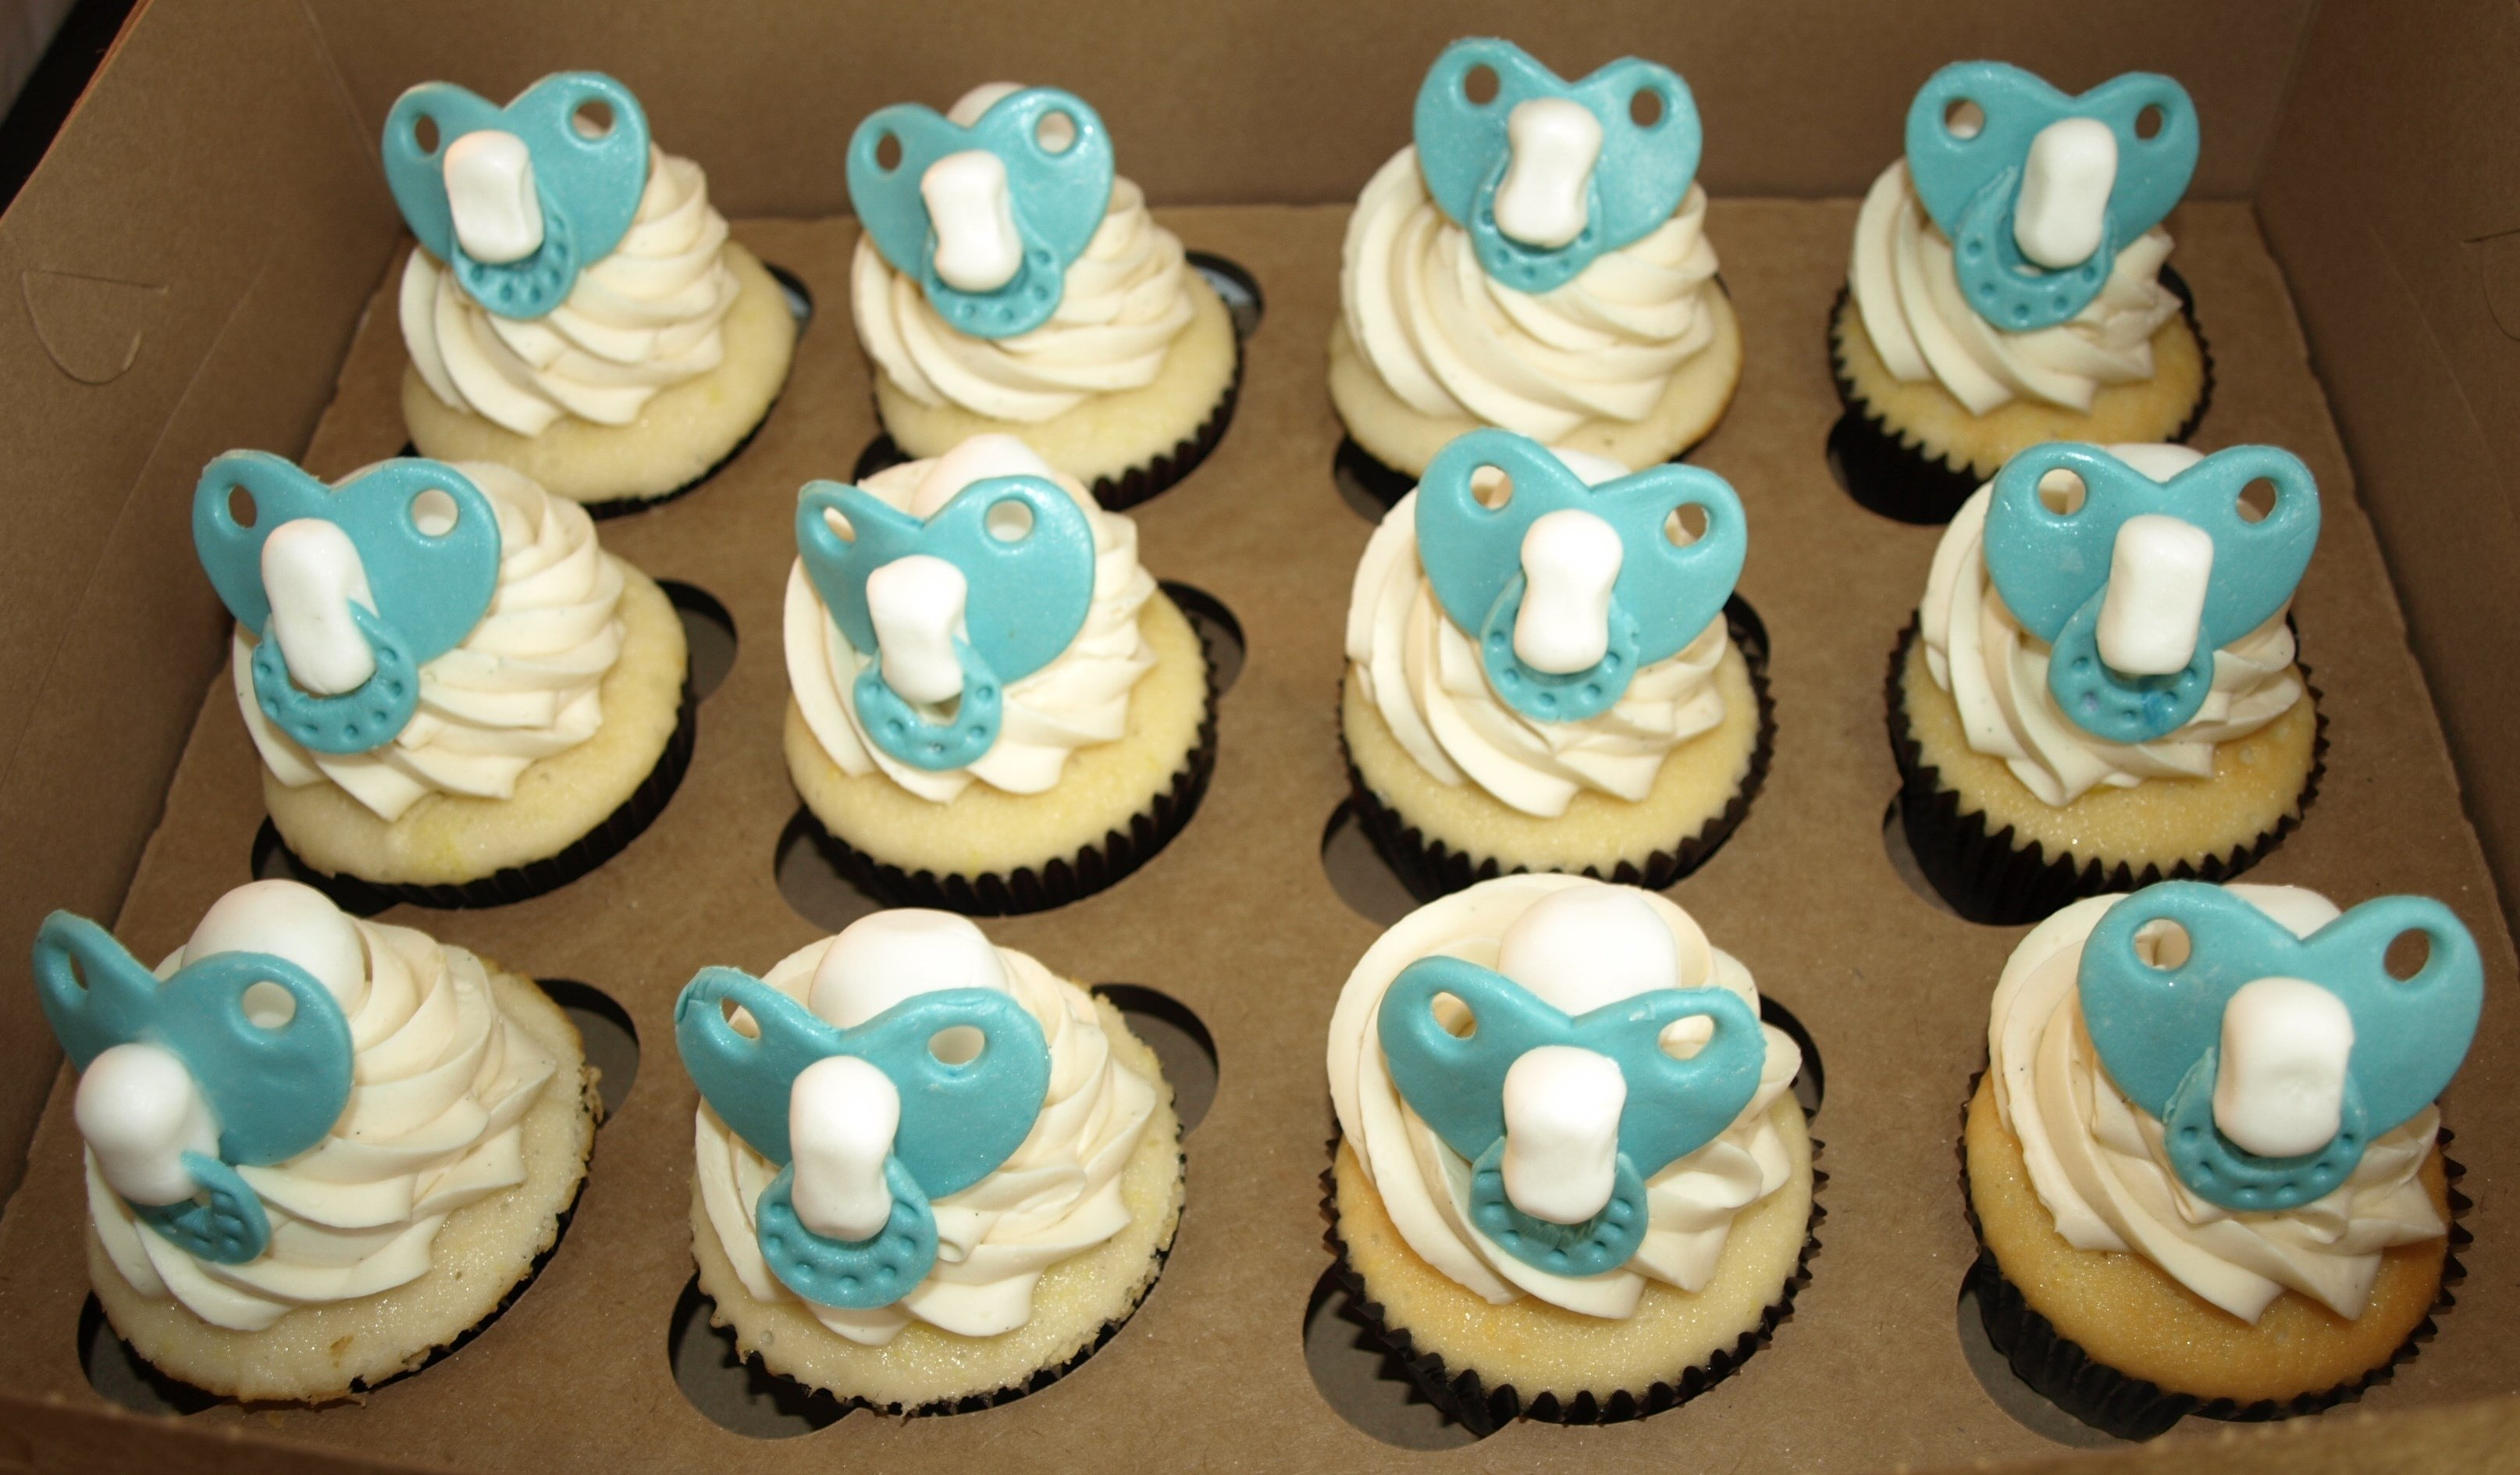 10 Fantastic Boy Baby Shower Cupcake Ideas baby boy shower cupcake ideas formal baby shower cupcakes long